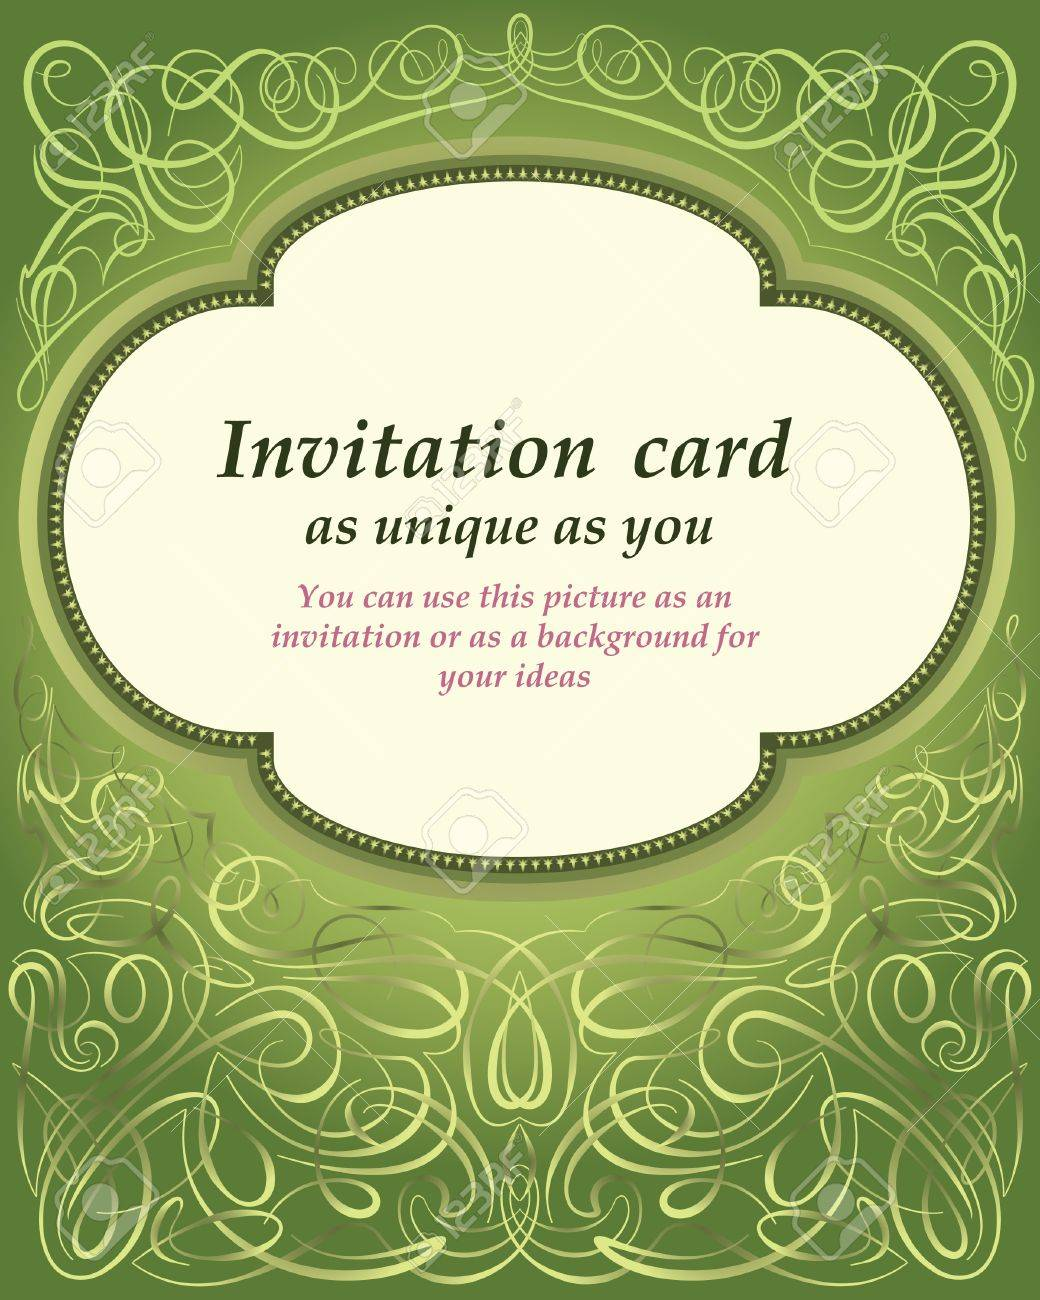 template invitation card with ornaments on green background